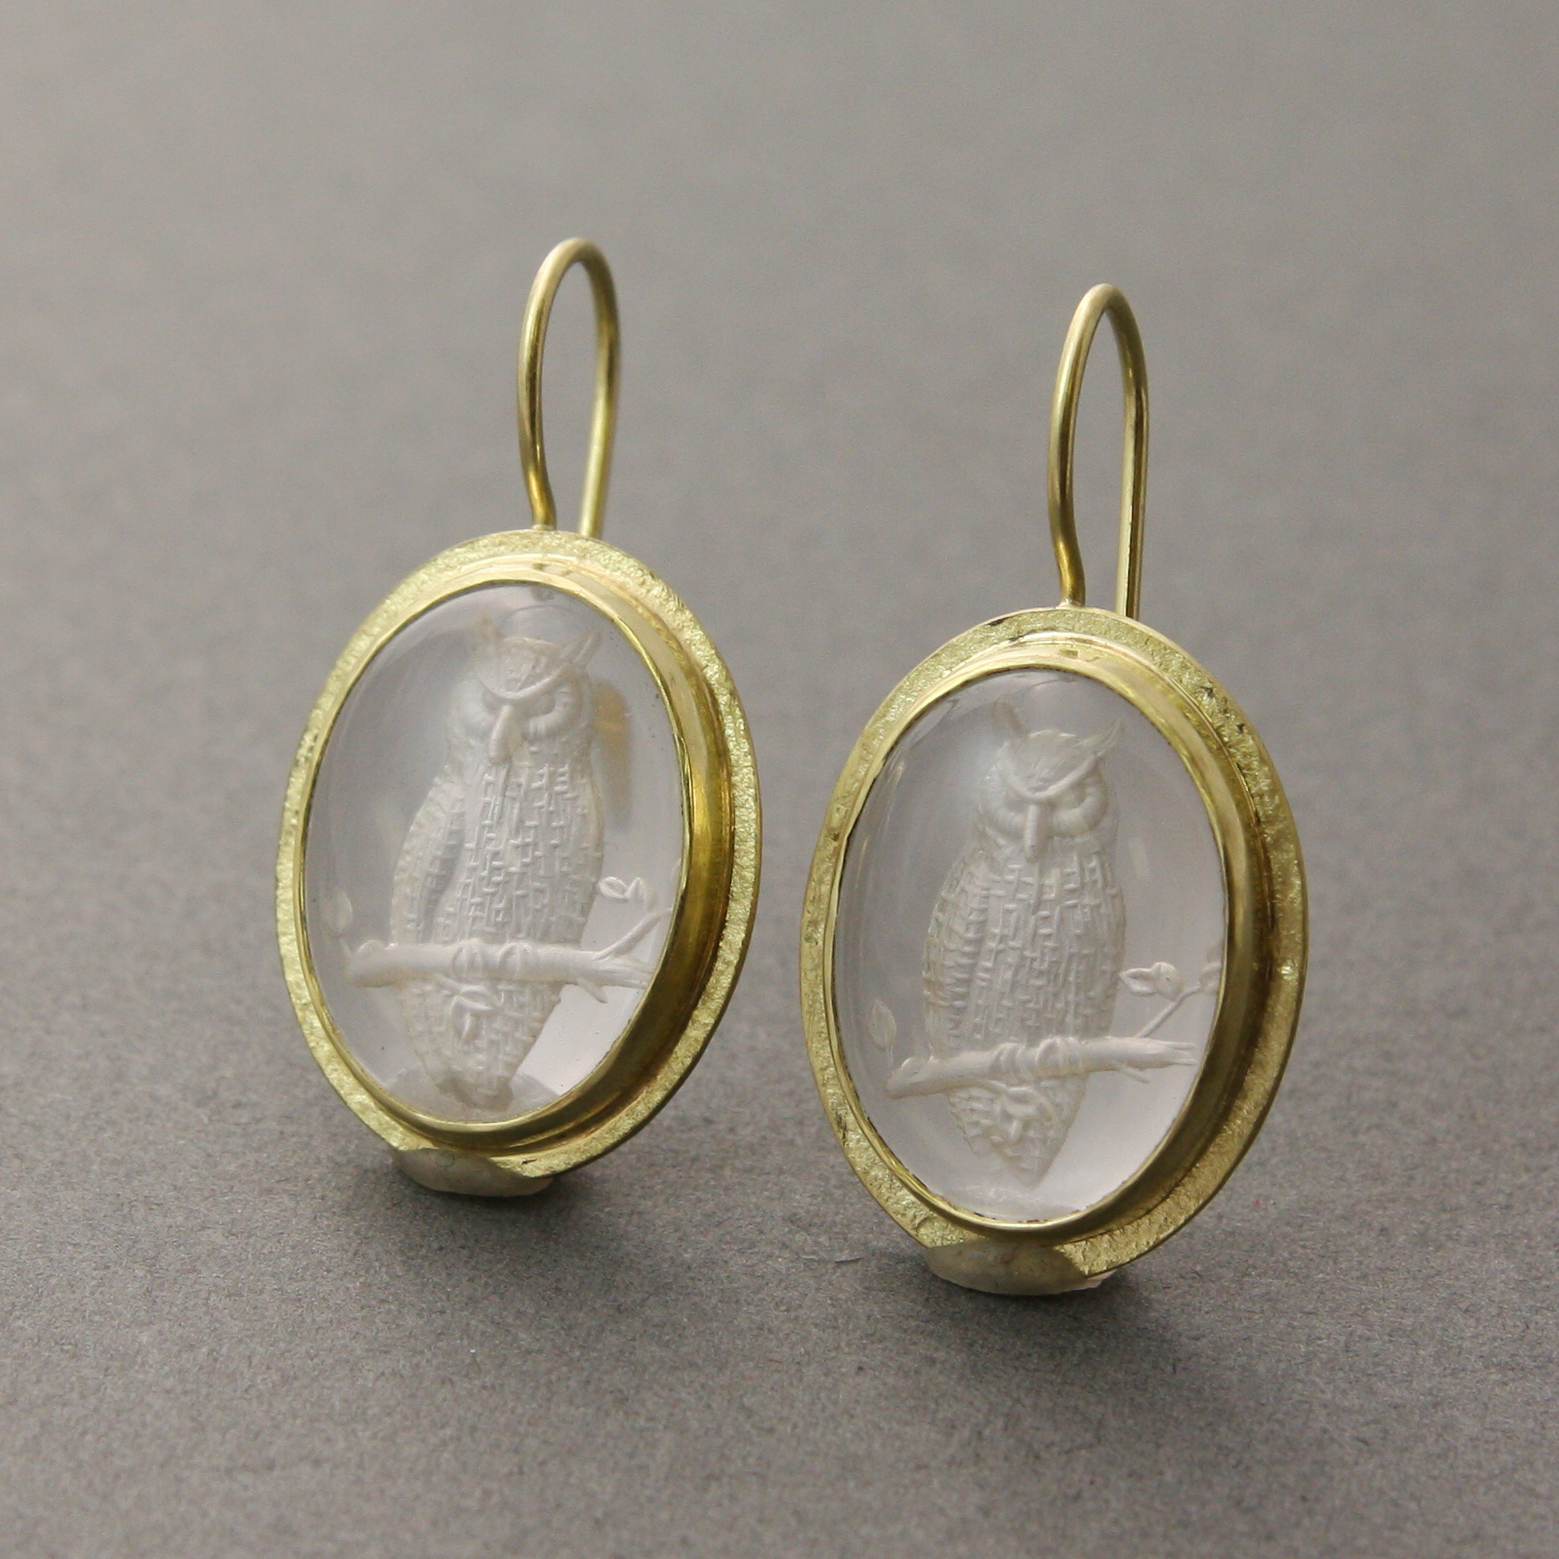 FLORA owl oval earrings (1 of 1).jpg